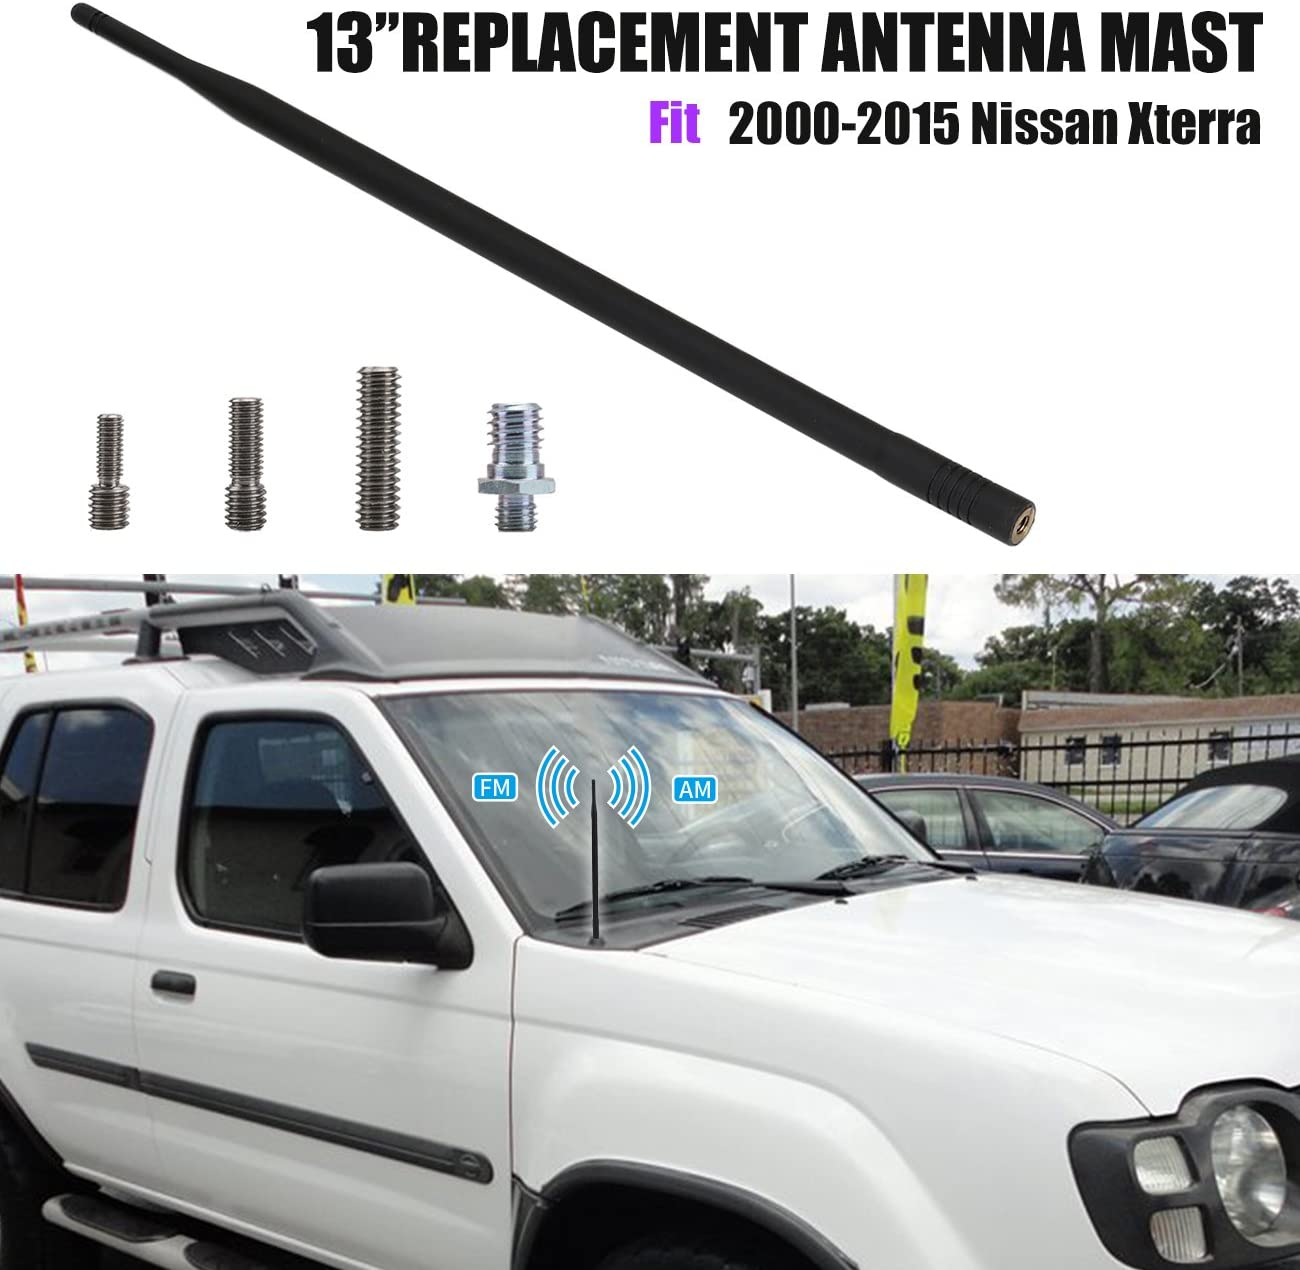 13 Short Rubber Antenna Replacement Mast for Nissan Xterra 2000-2015